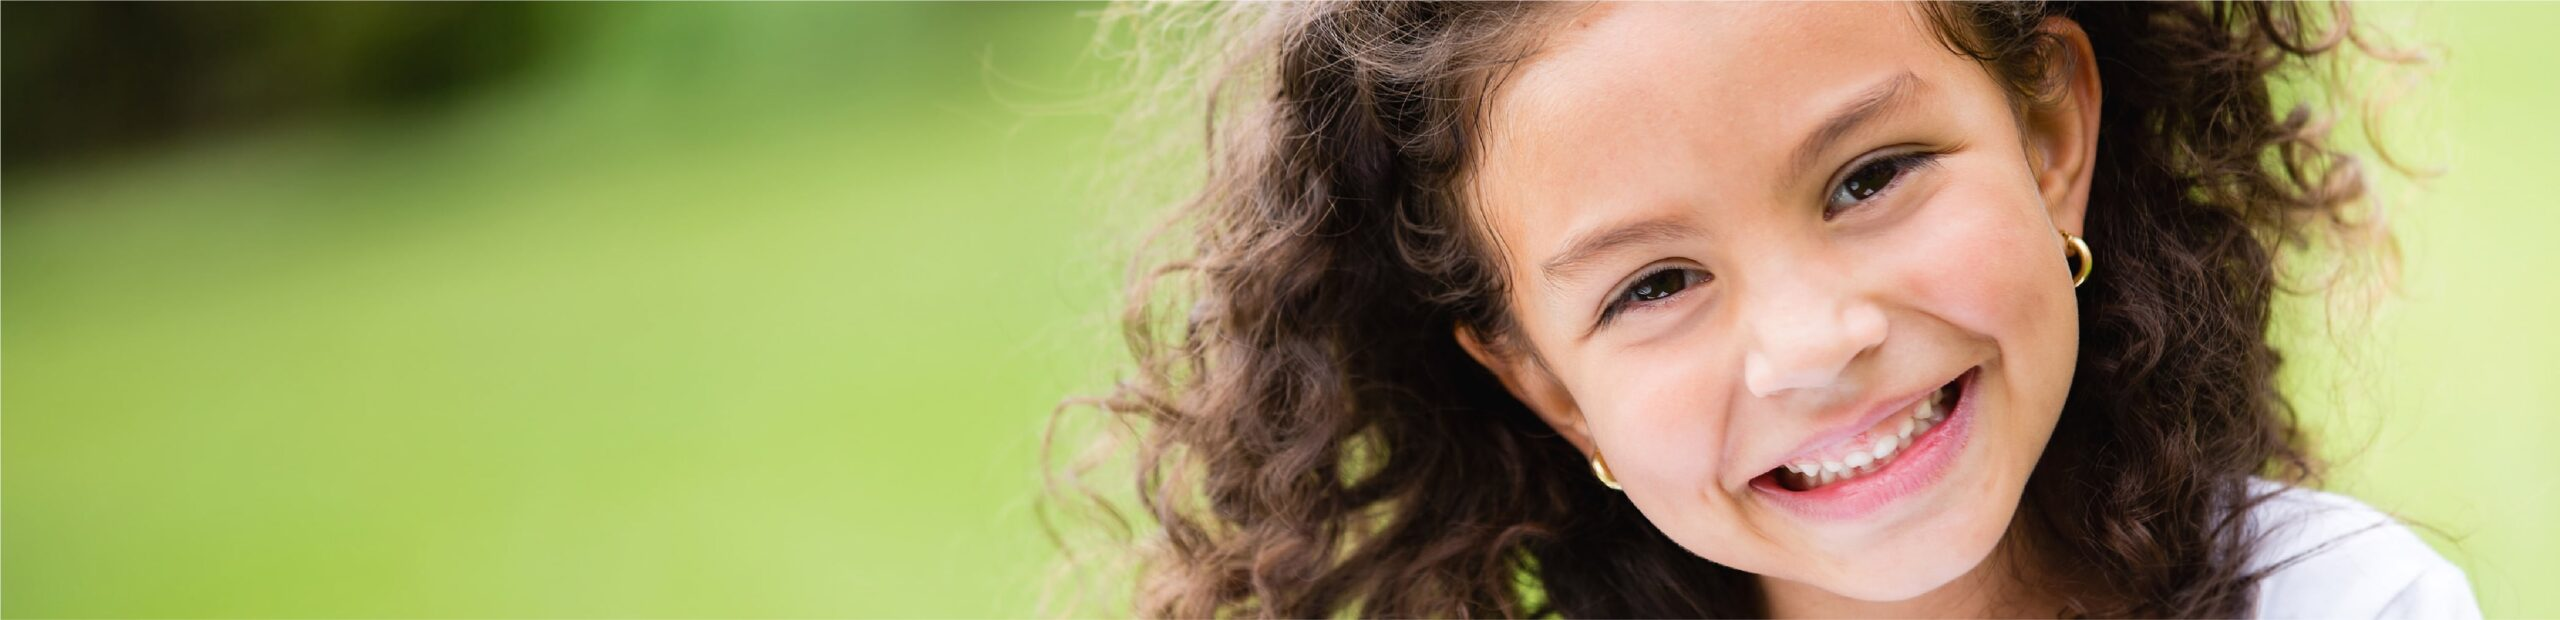 young female with curly brown hair smiling